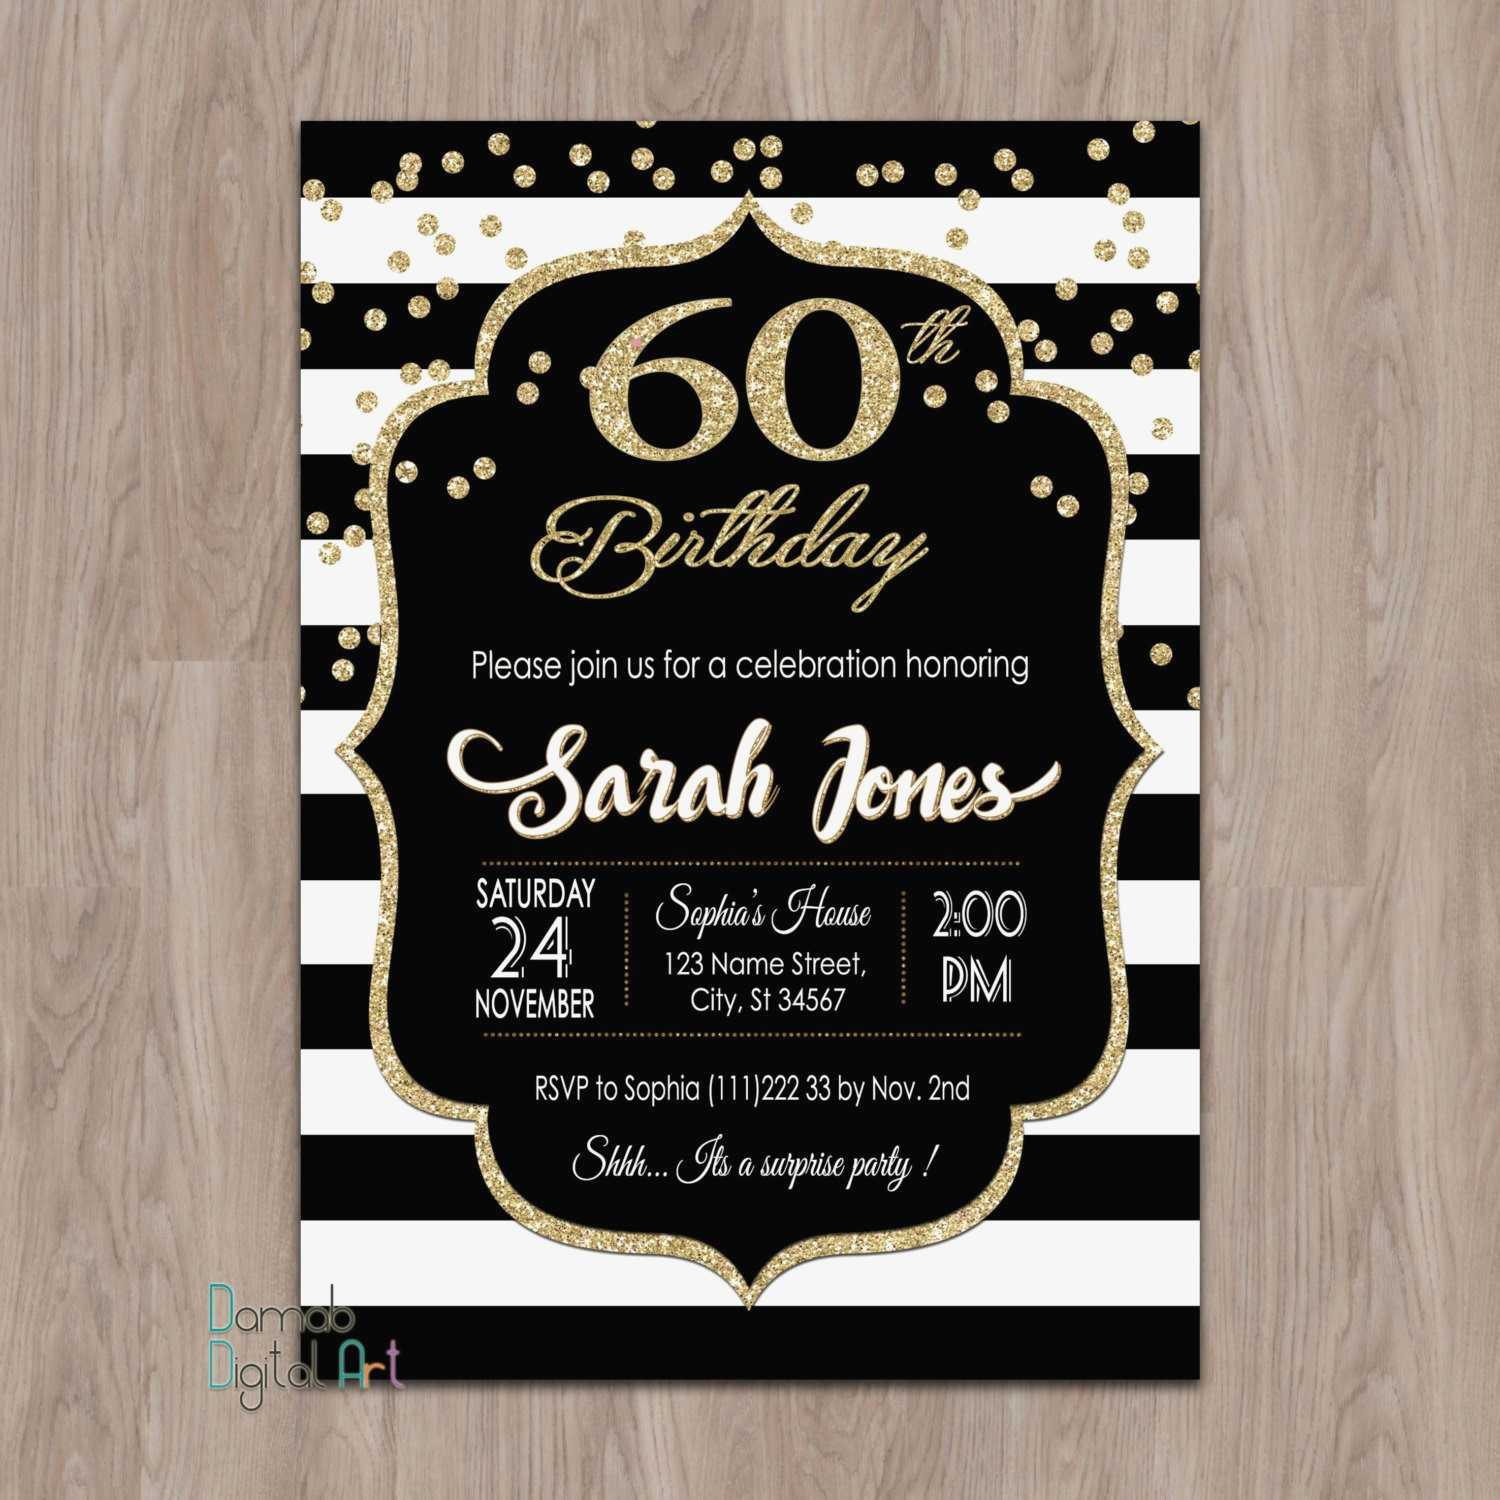 60Th Wedding Anniversary Invitations Unique Free Printable - Free Printable 60Th Wedding Anniversary Invitations